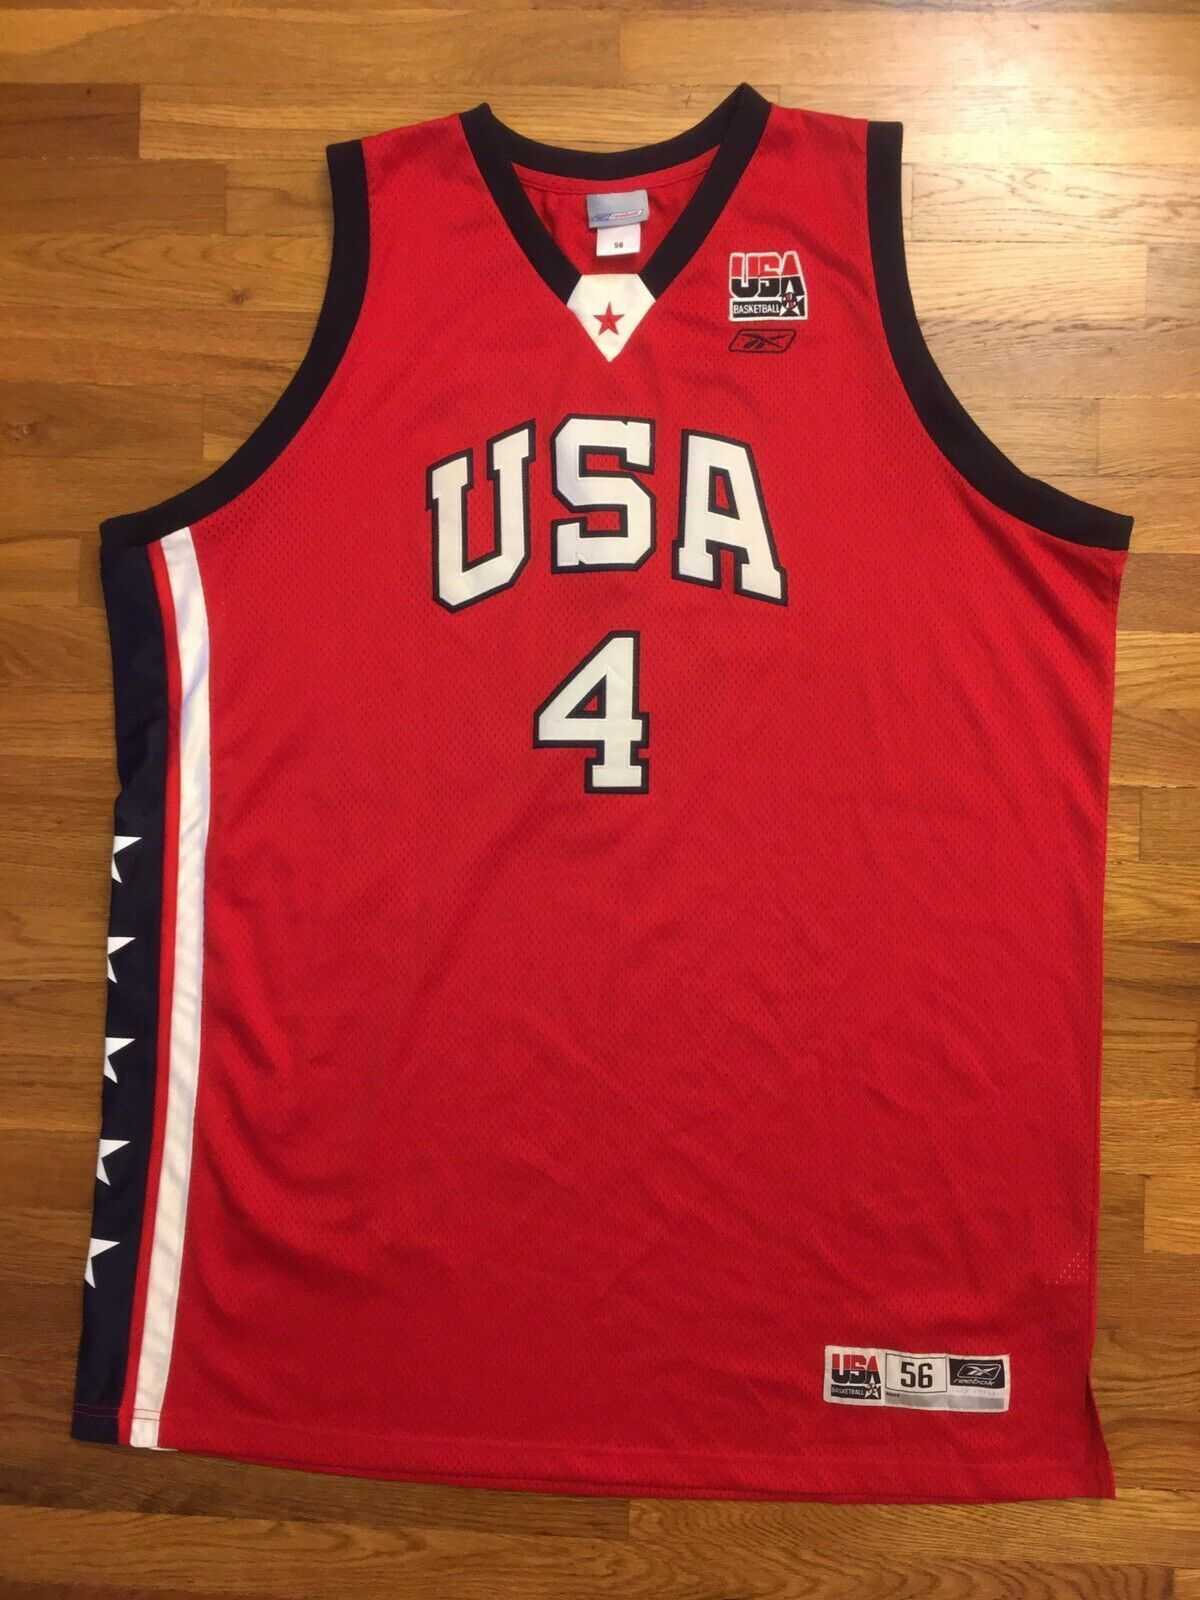 Primary image for Authentic Reebok 2003 Team USA Olympic Allen Iverson Alternate Red Jersey 56